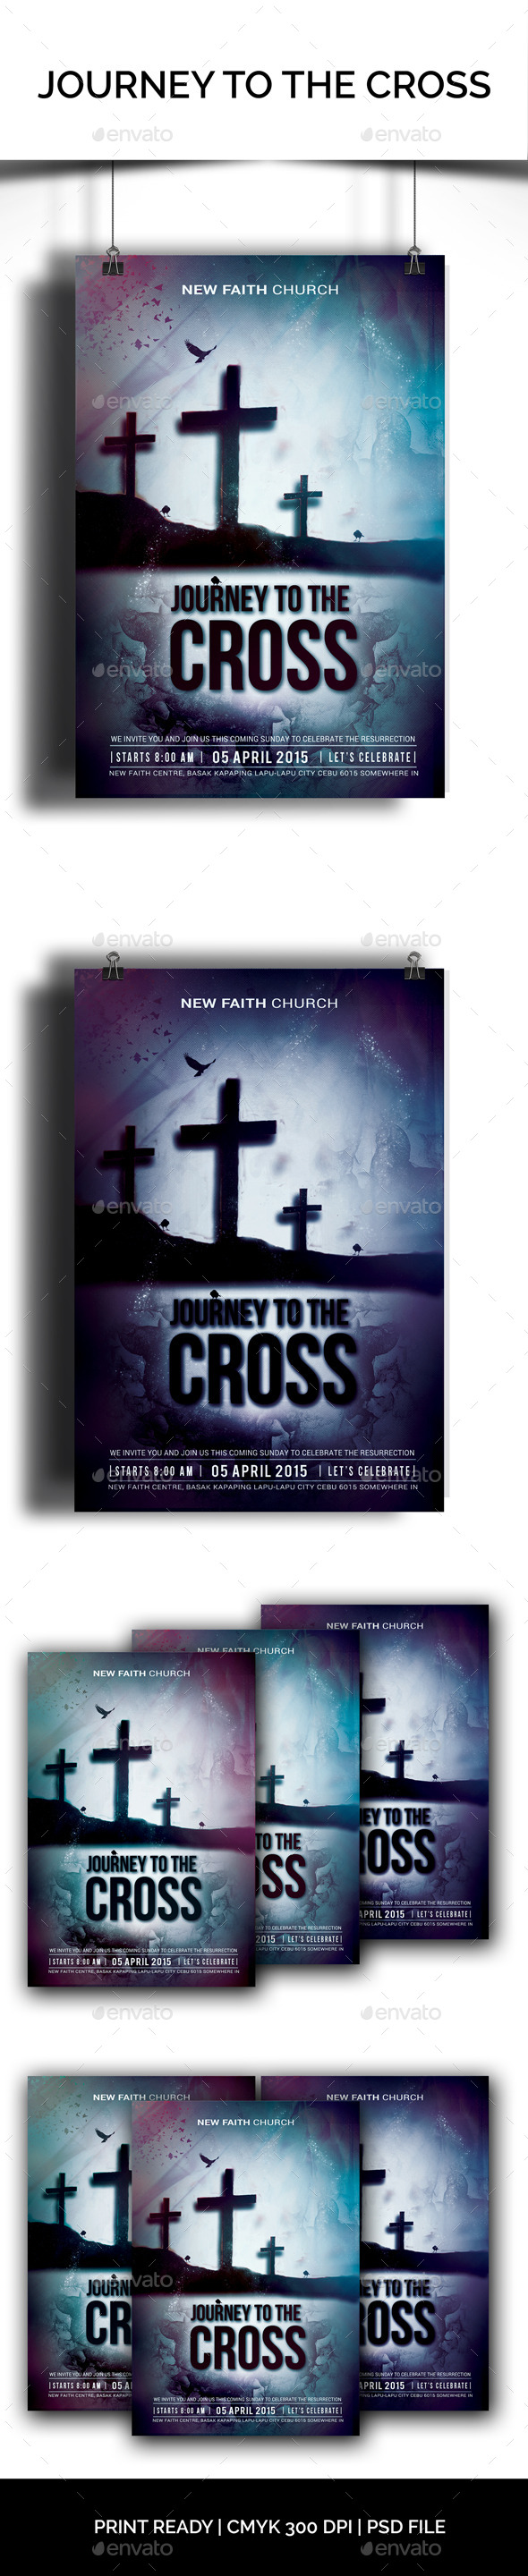 Journey To The Cross - Church Flyers